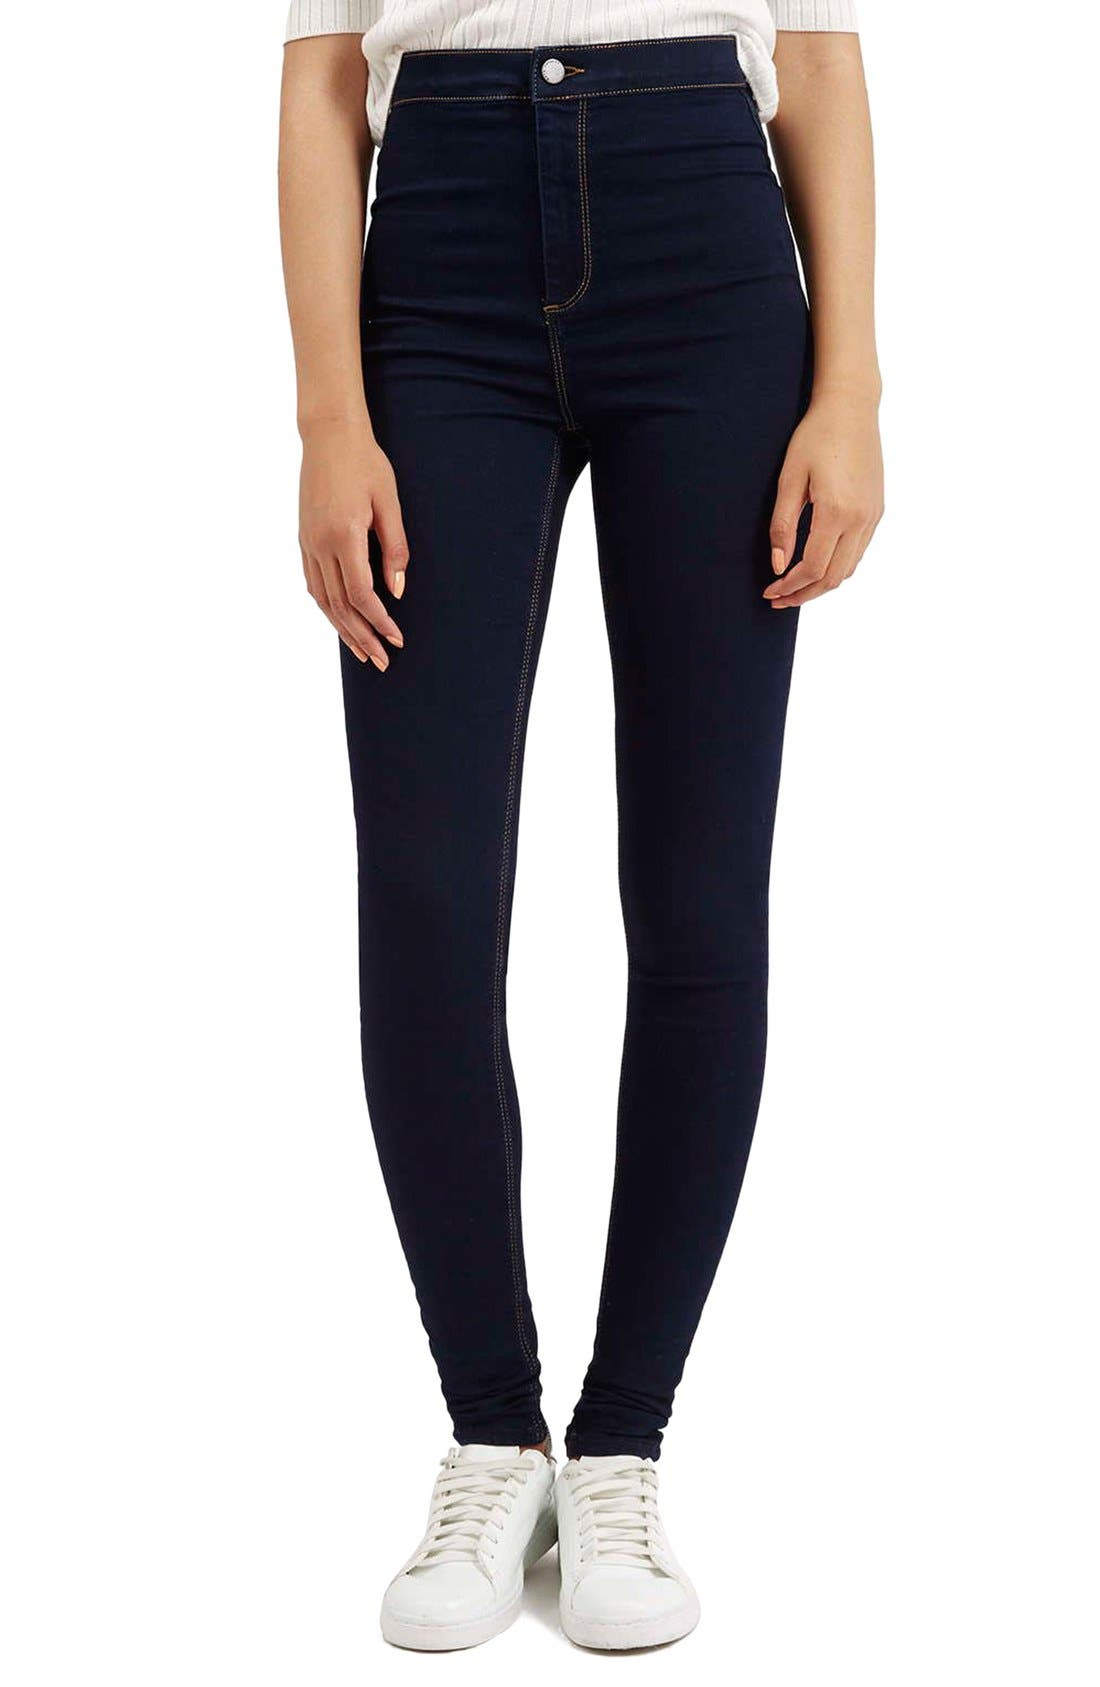 Alternate Image 1 Selected - Topshop Moto 'Joni' Super Skinny Jeans (Mid Denim) (Tall)